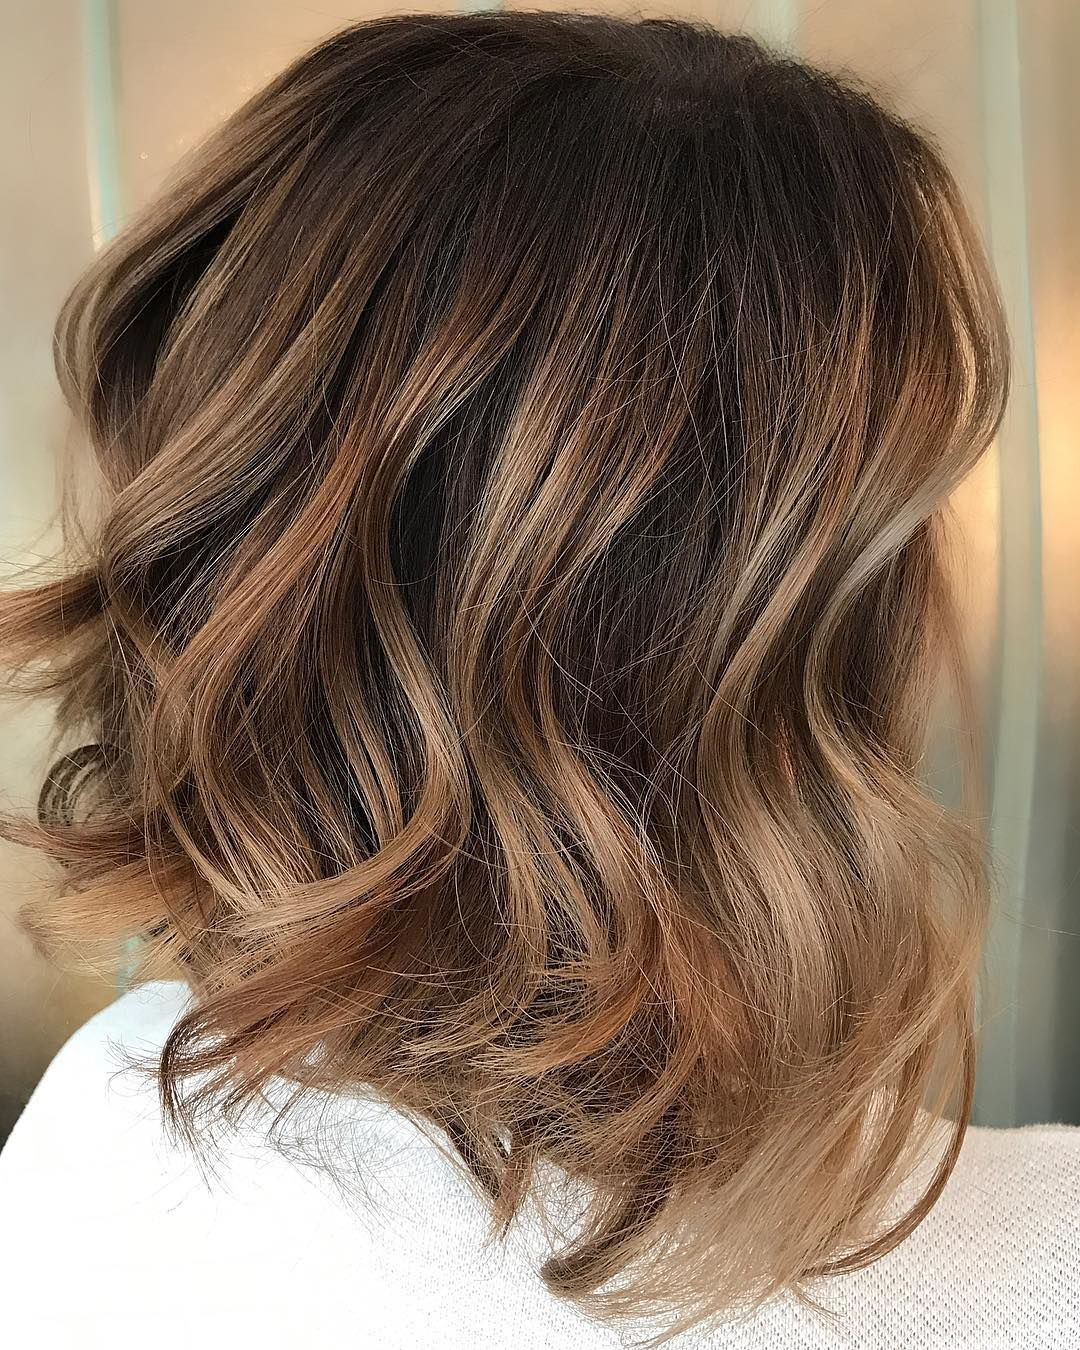 10 Trendy Brown Balayage Hairstyles For Medium Length Hair 2019